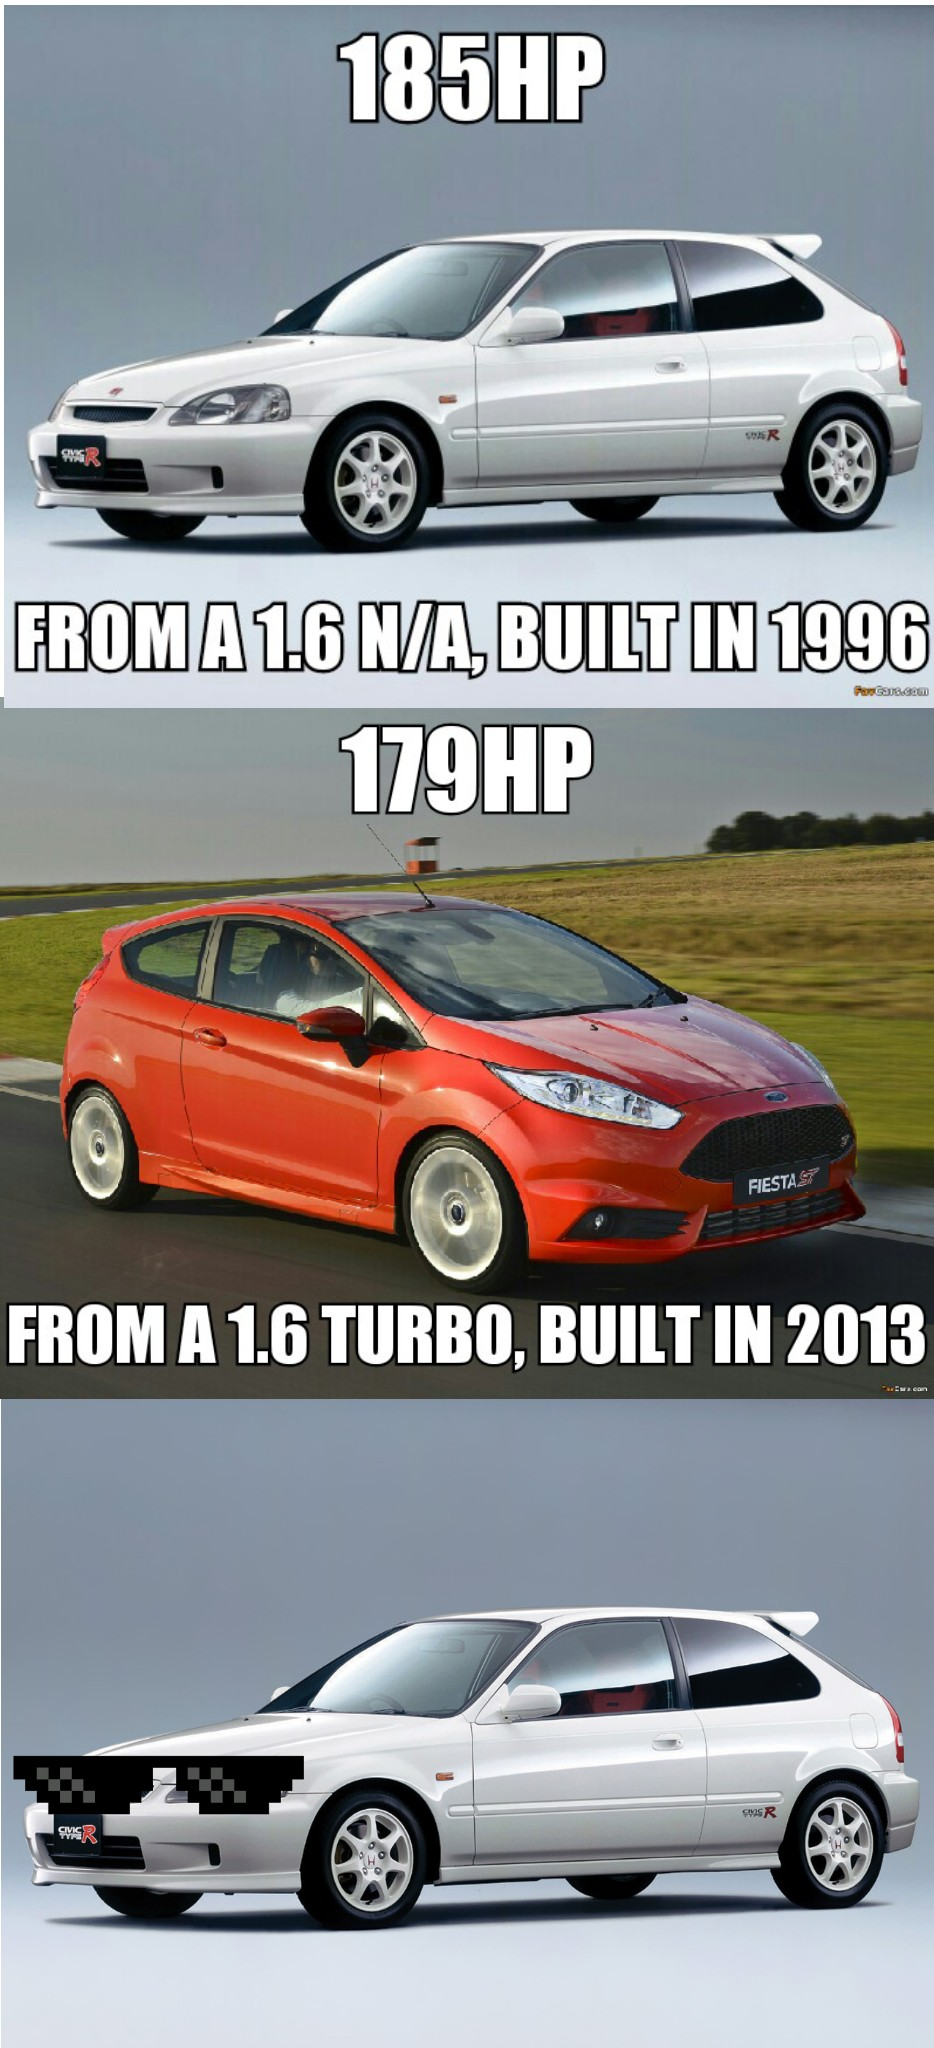 I Know The Fiesta St Have More Horses Now But It Had That